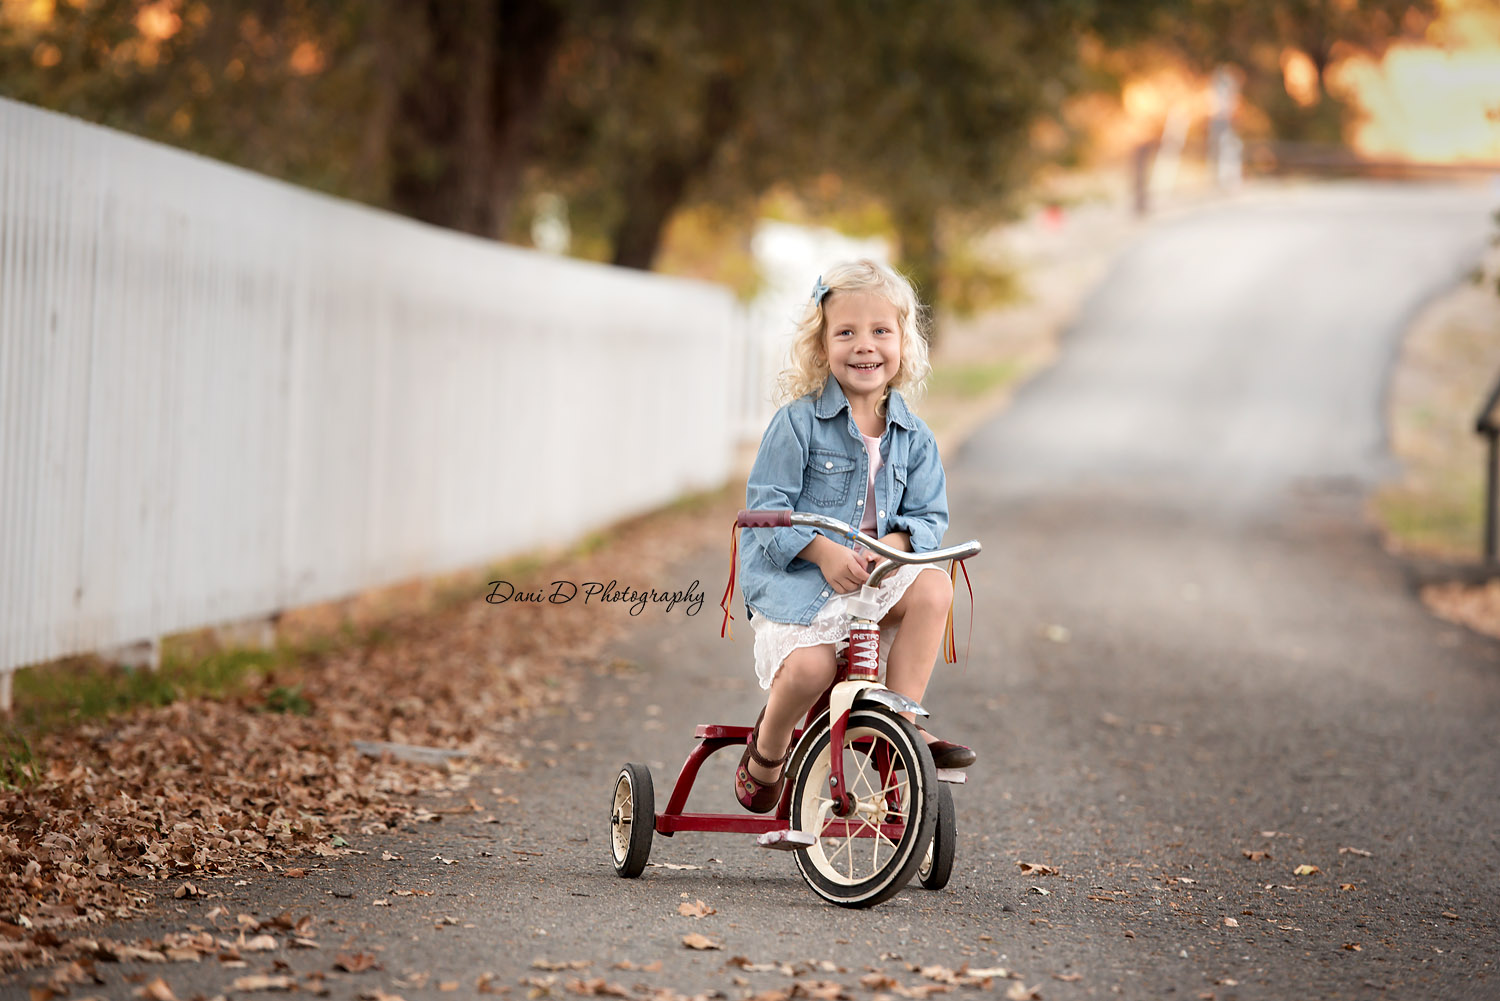 smiling girl on tricycle - Redding CA photographer - Dani D Photography